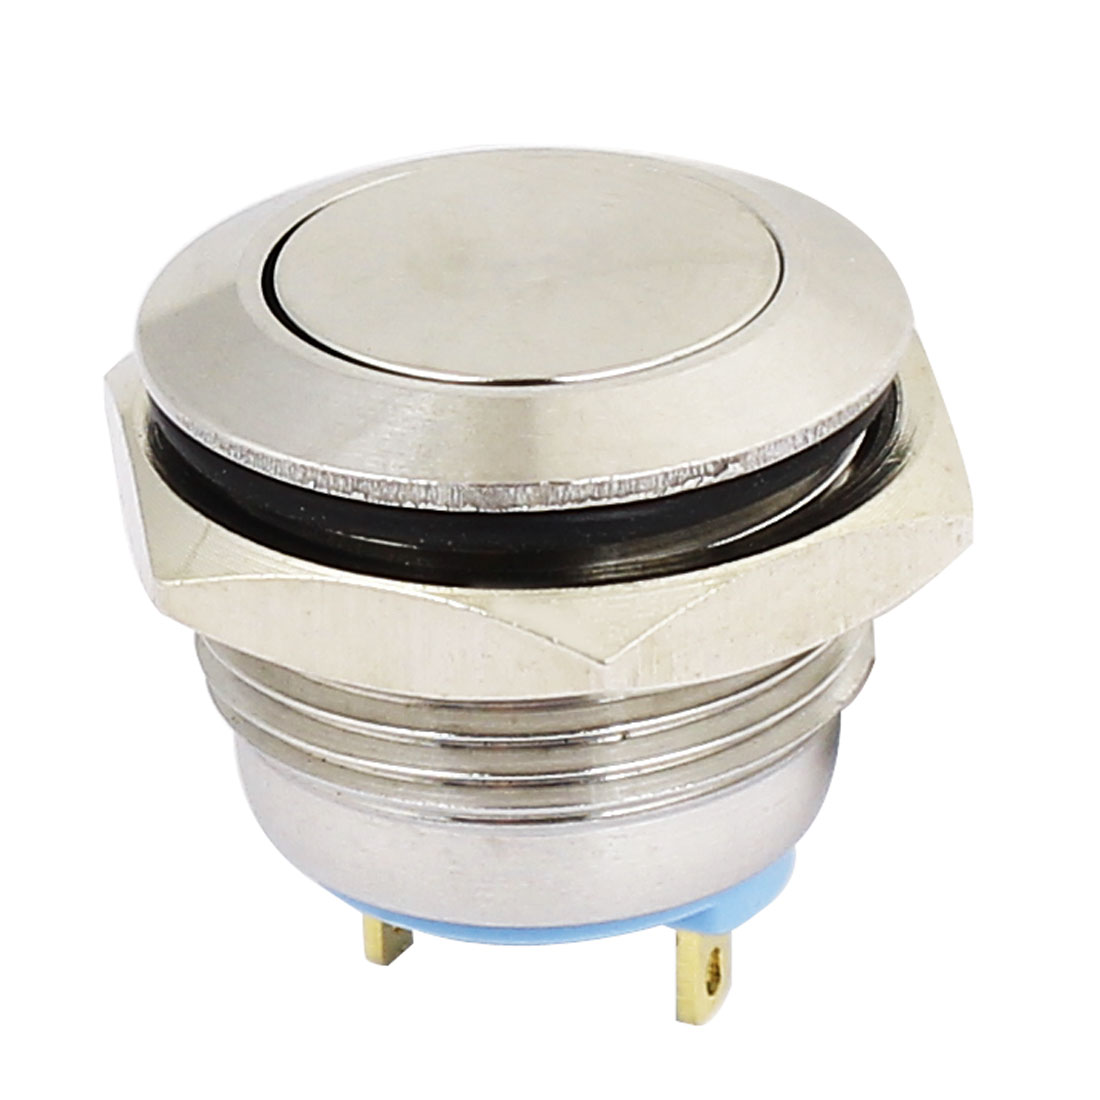 16mm Dia SPST Stainless Steel Momentary Pushbutton Switch Flat Head